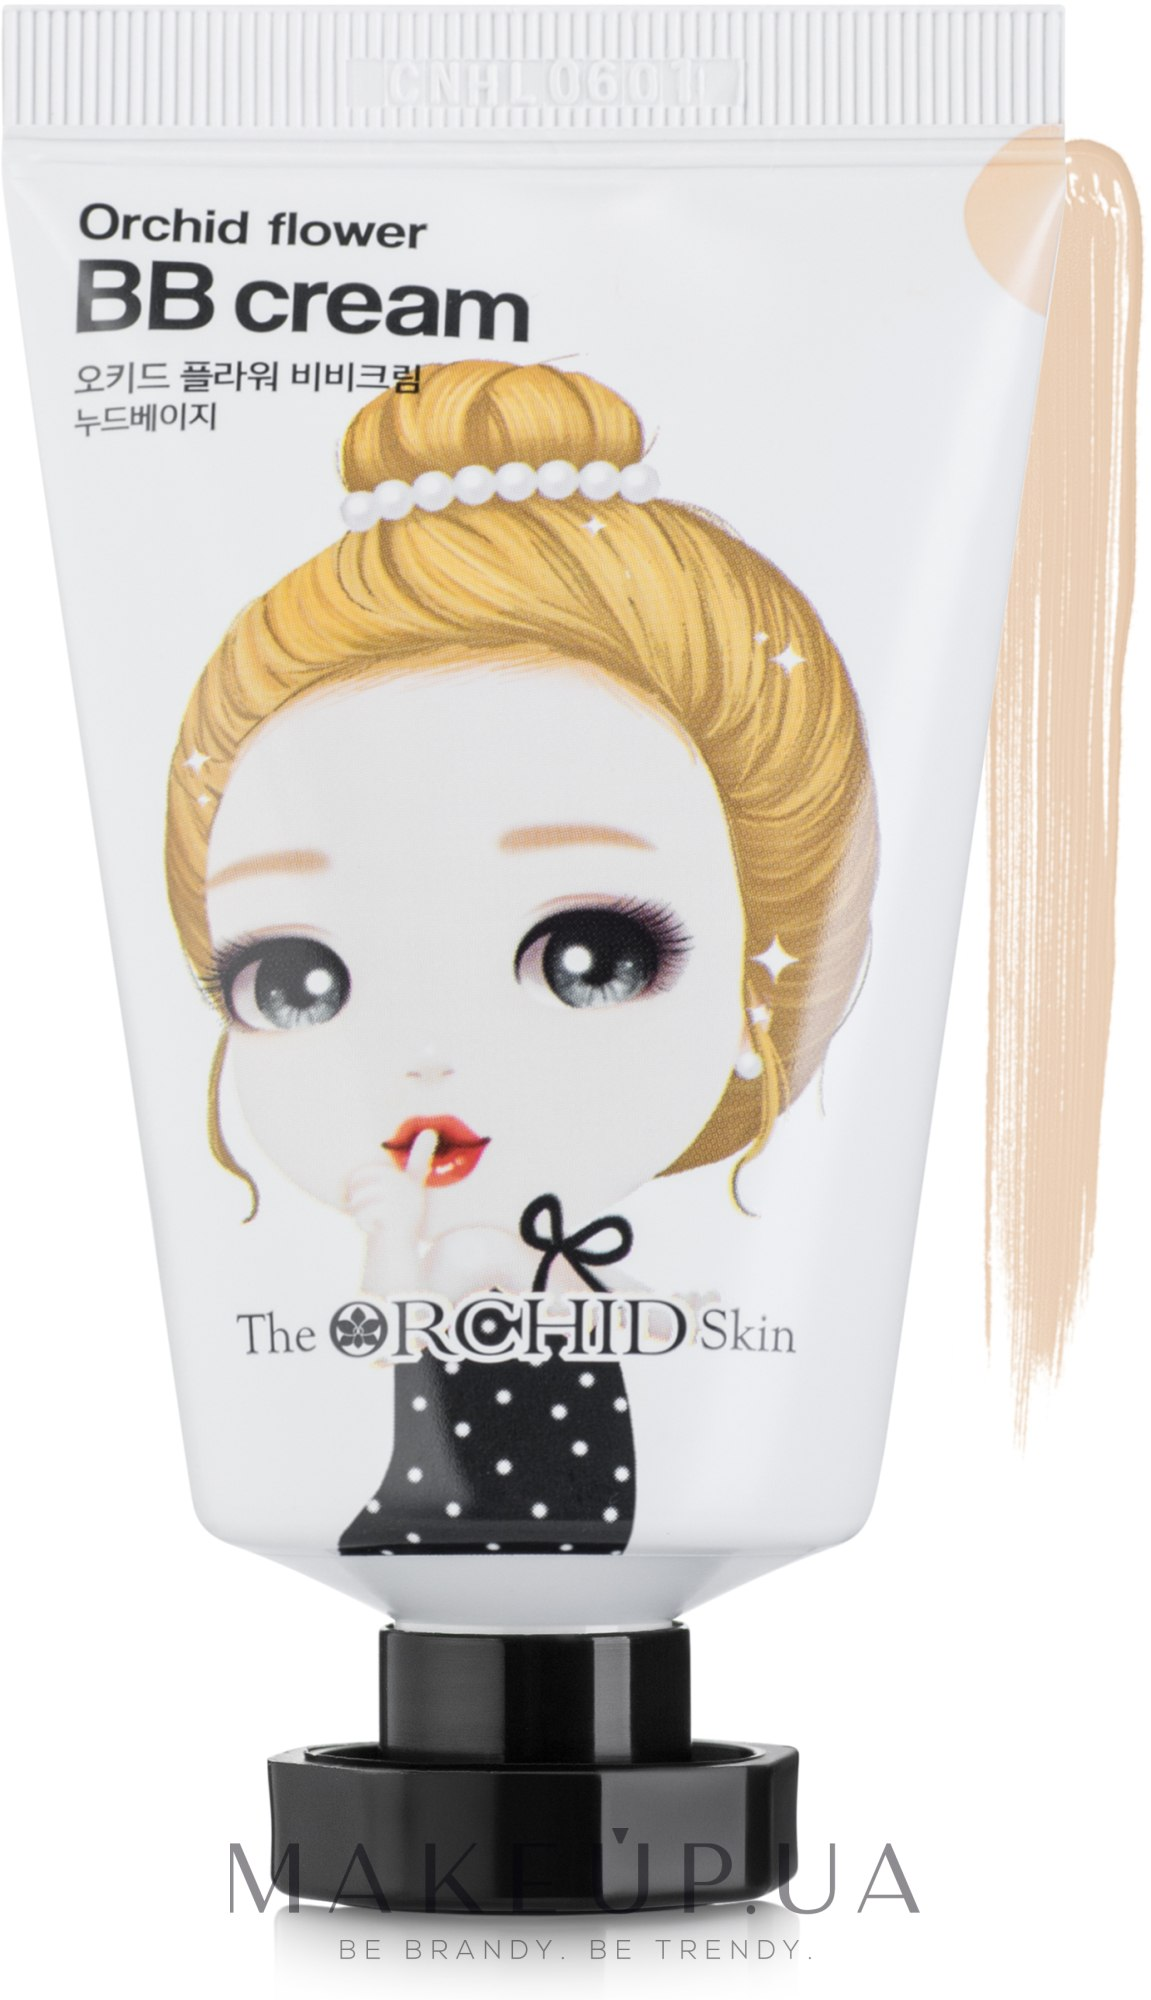 BB крем - The Orchid Skin Orchid Flower BB Cream — фото Nude Beige